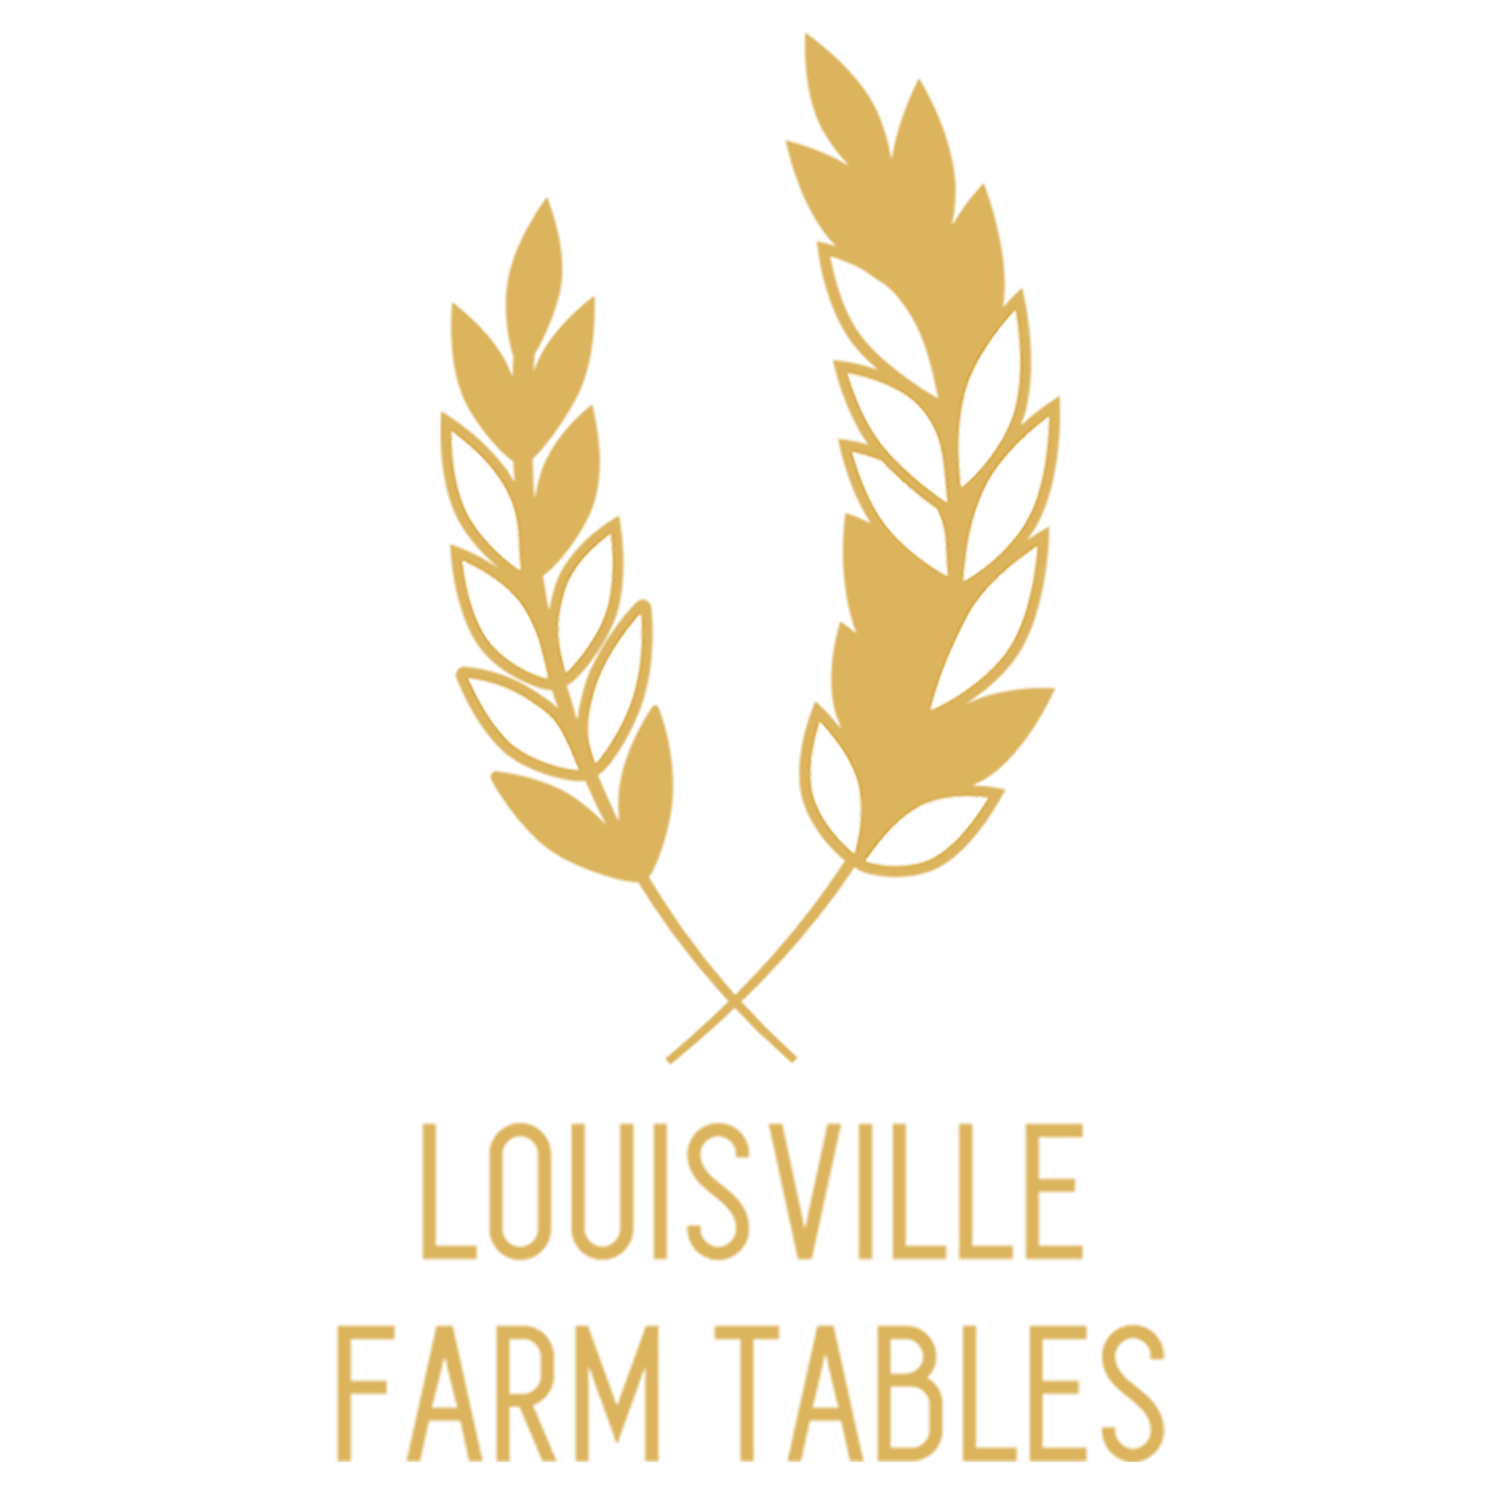 Louisville Farm Tables